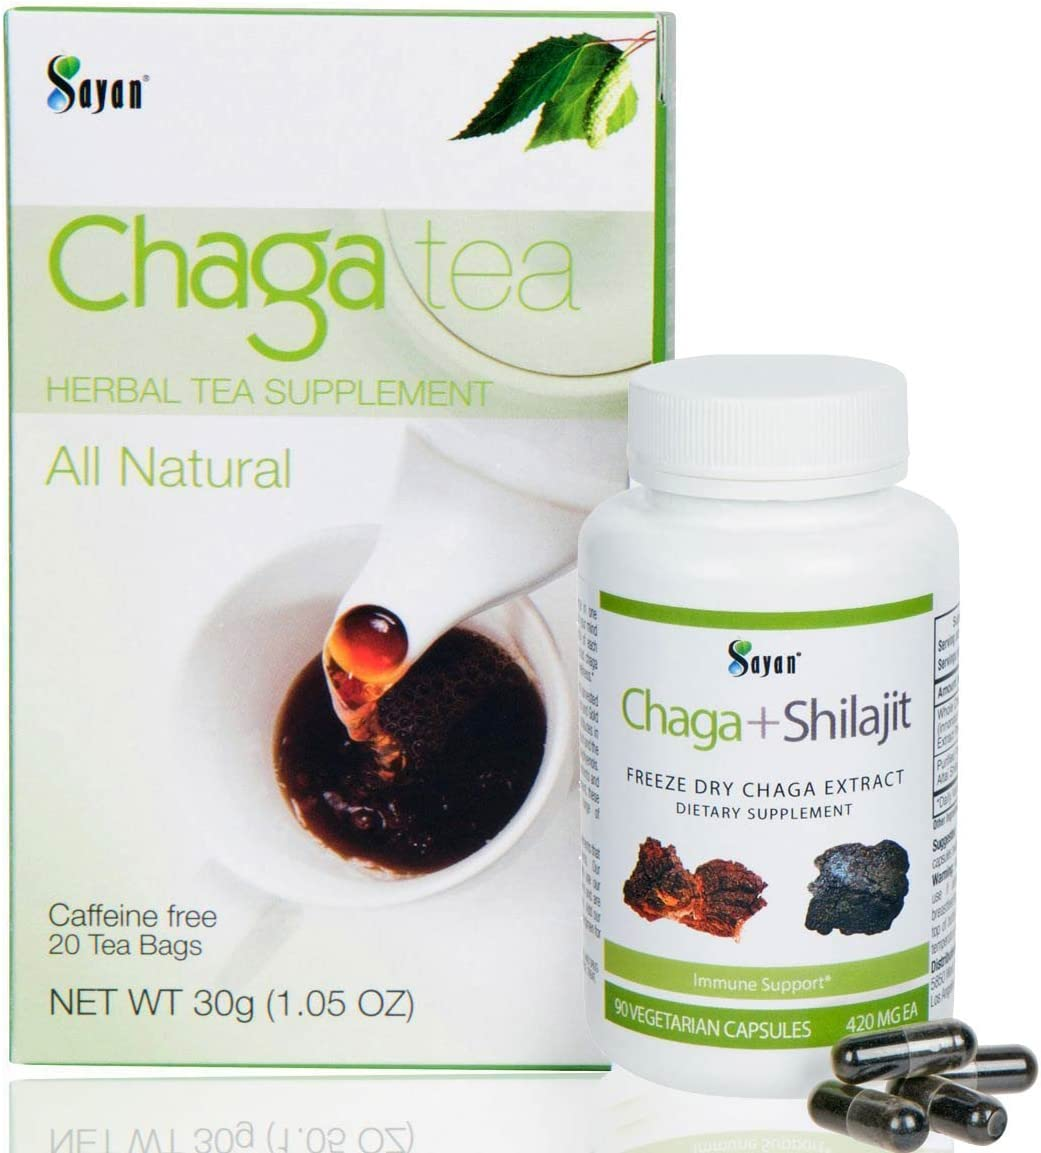 Sayan Siberian Chaga Mushroom Extract with Shilajit 90 Vegetarian Capsules and 20 Chaga Tea Bag Box – Wild-Harvested Supplement for Immune System Support Natural Energy Boost